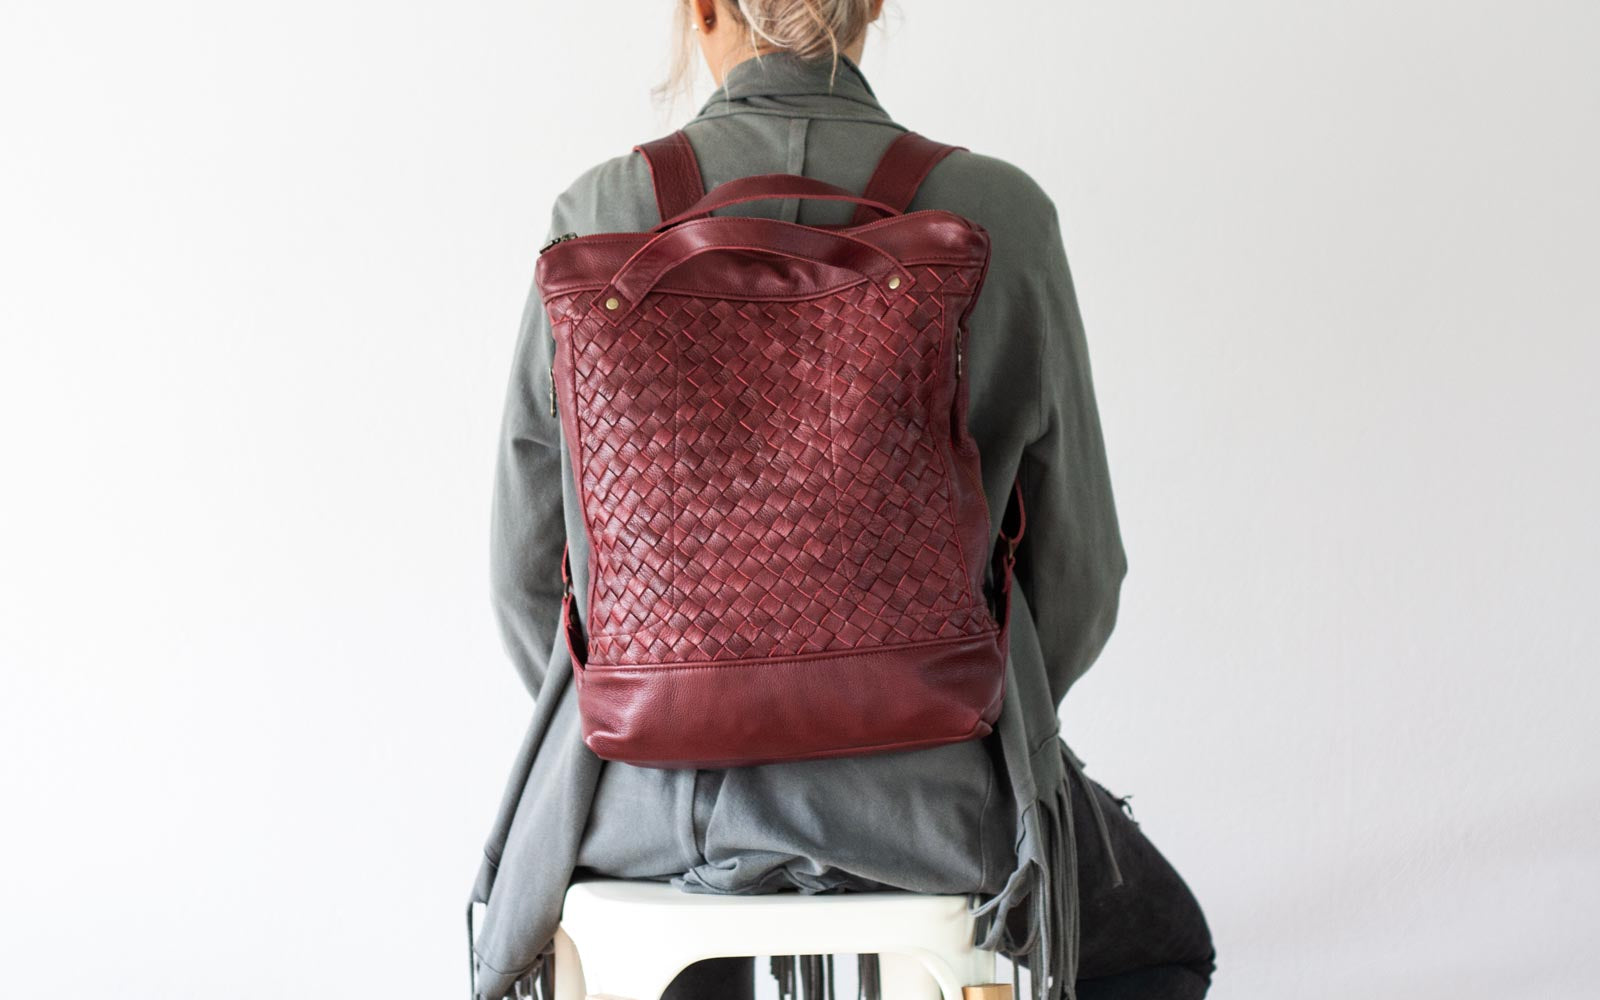 The Minos backpack in handwoven burgundy leather by milloo